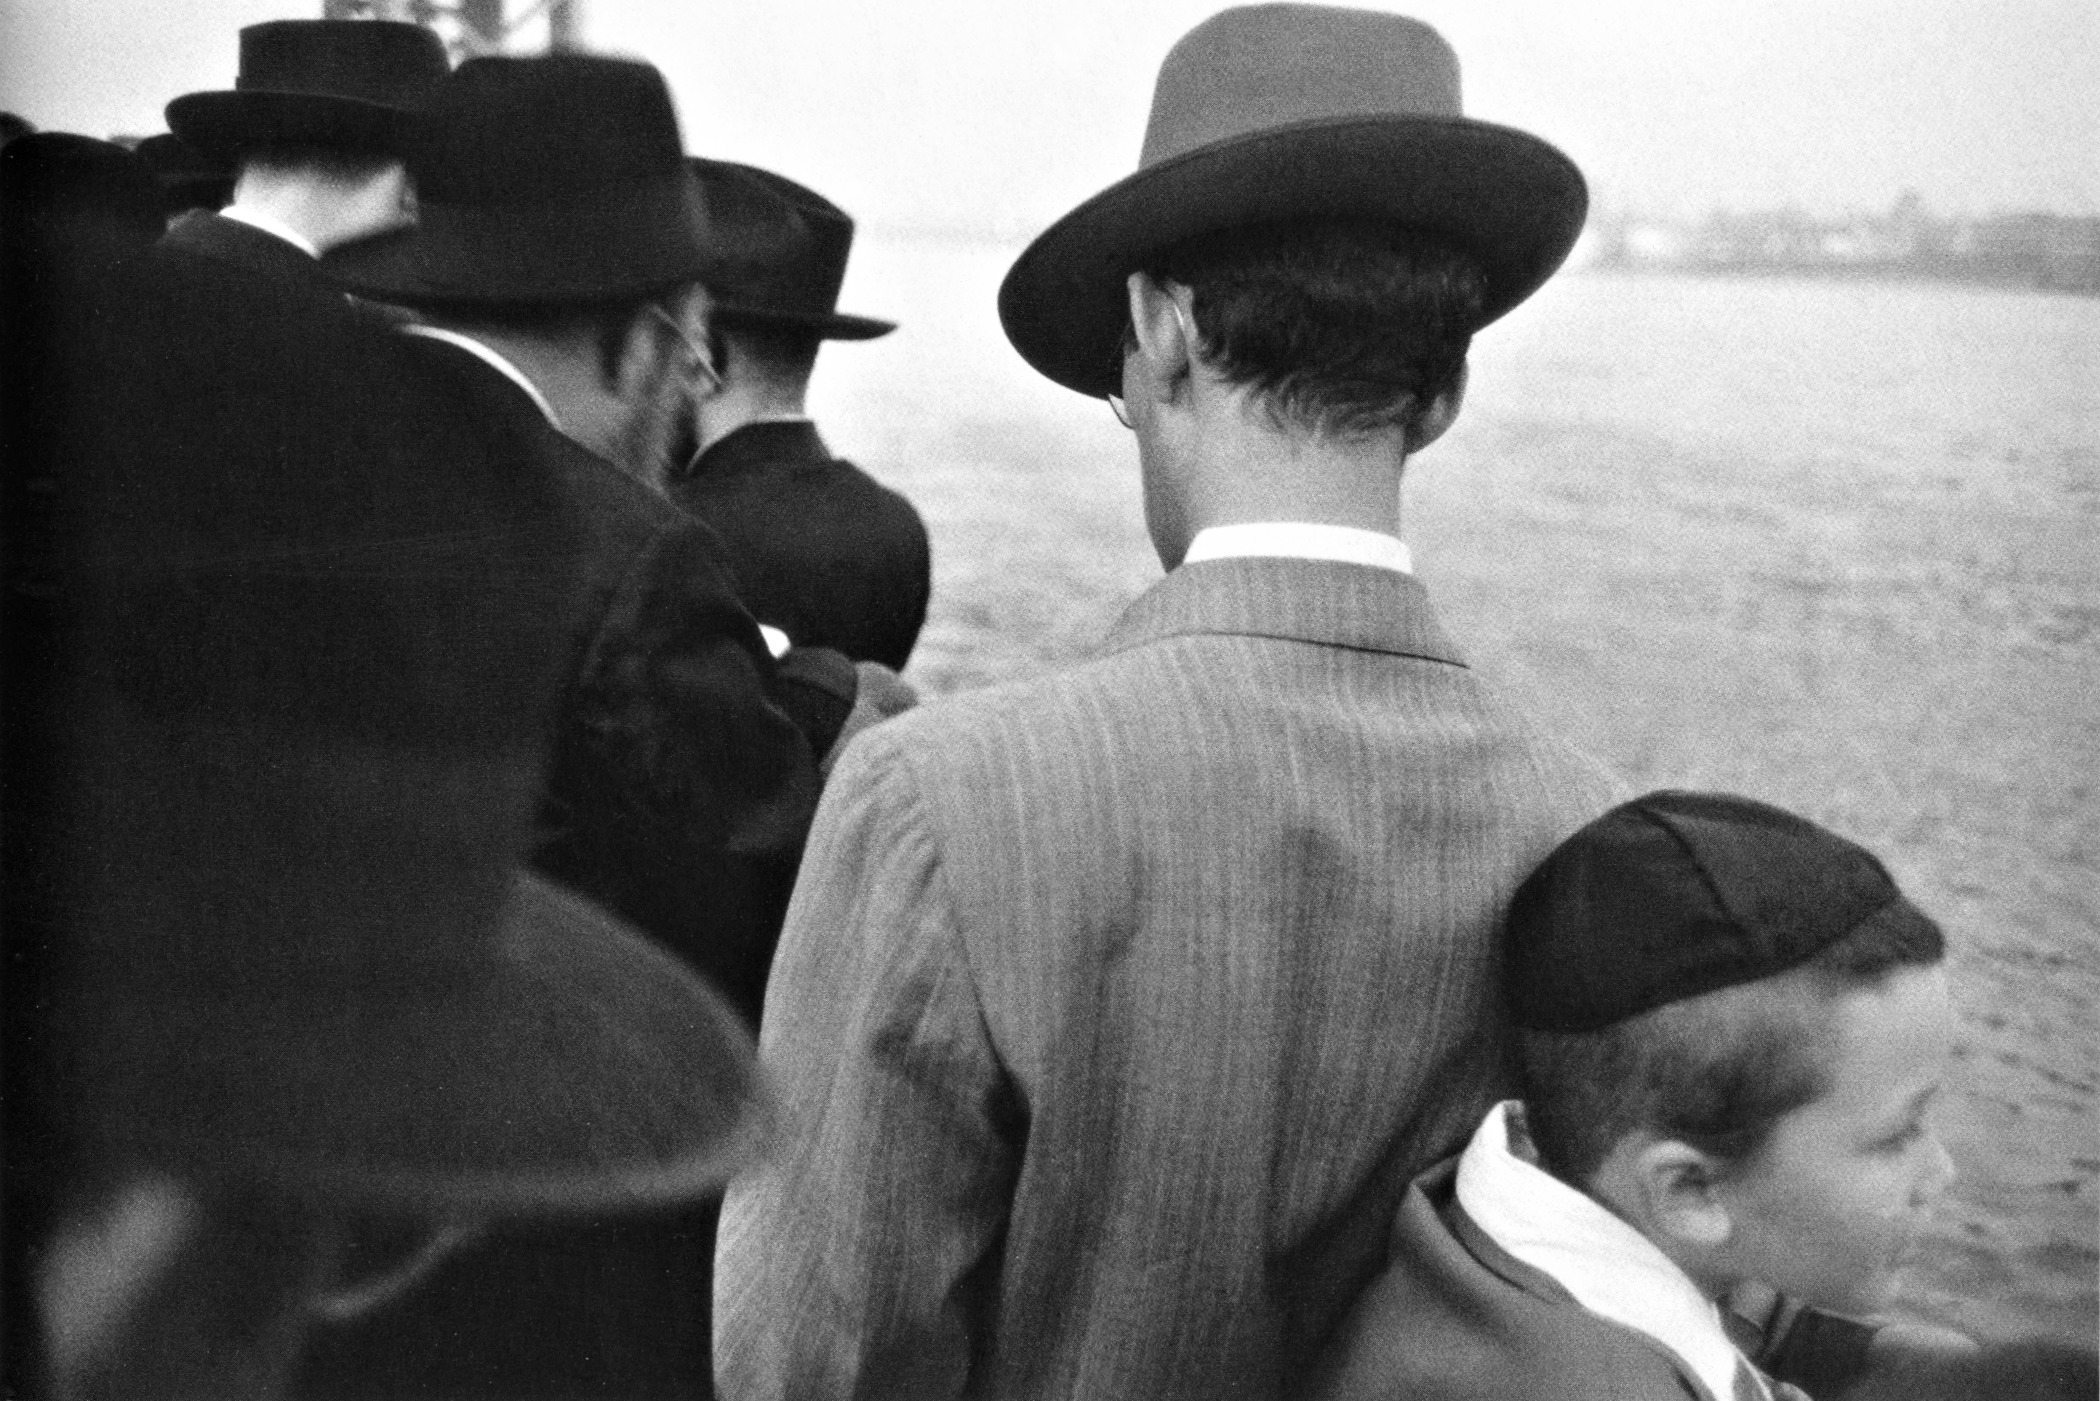 16 Yom Kippur -East River, New York City 1954